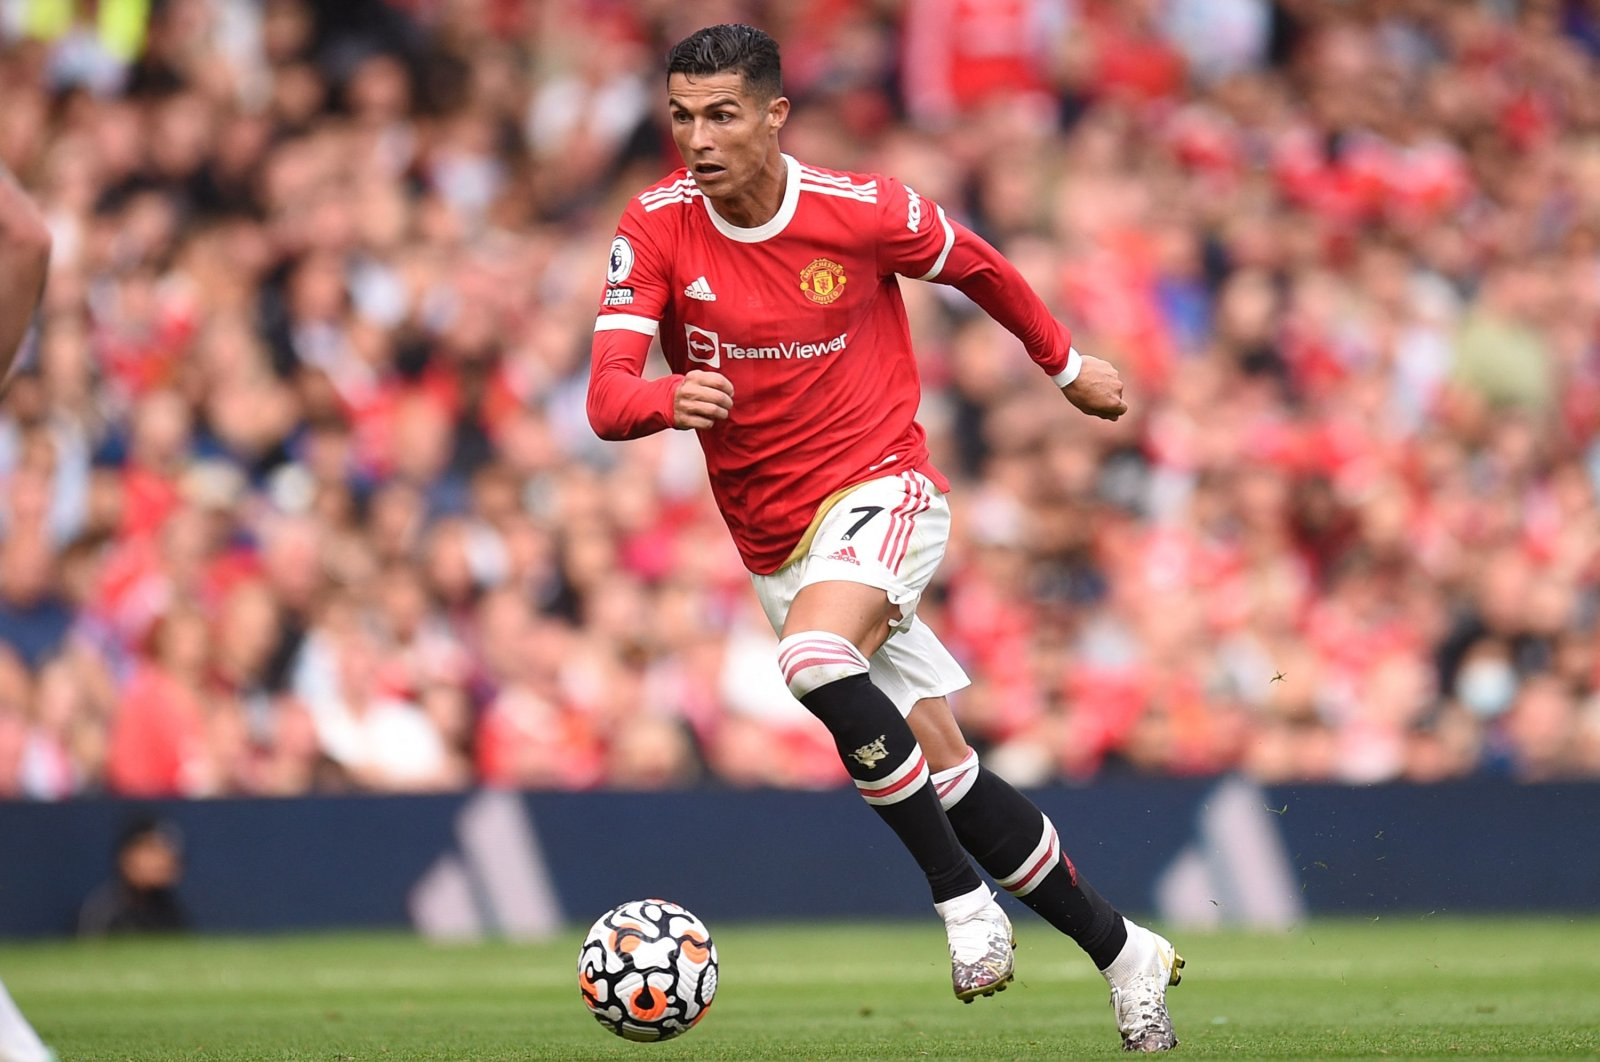 Manchester United's Cristiano Ronaldo runs with the ball during a Premier League match against Newcastle at Old Trafford in Manchester, England, Sept. 11, 2021. (AFP Photo)